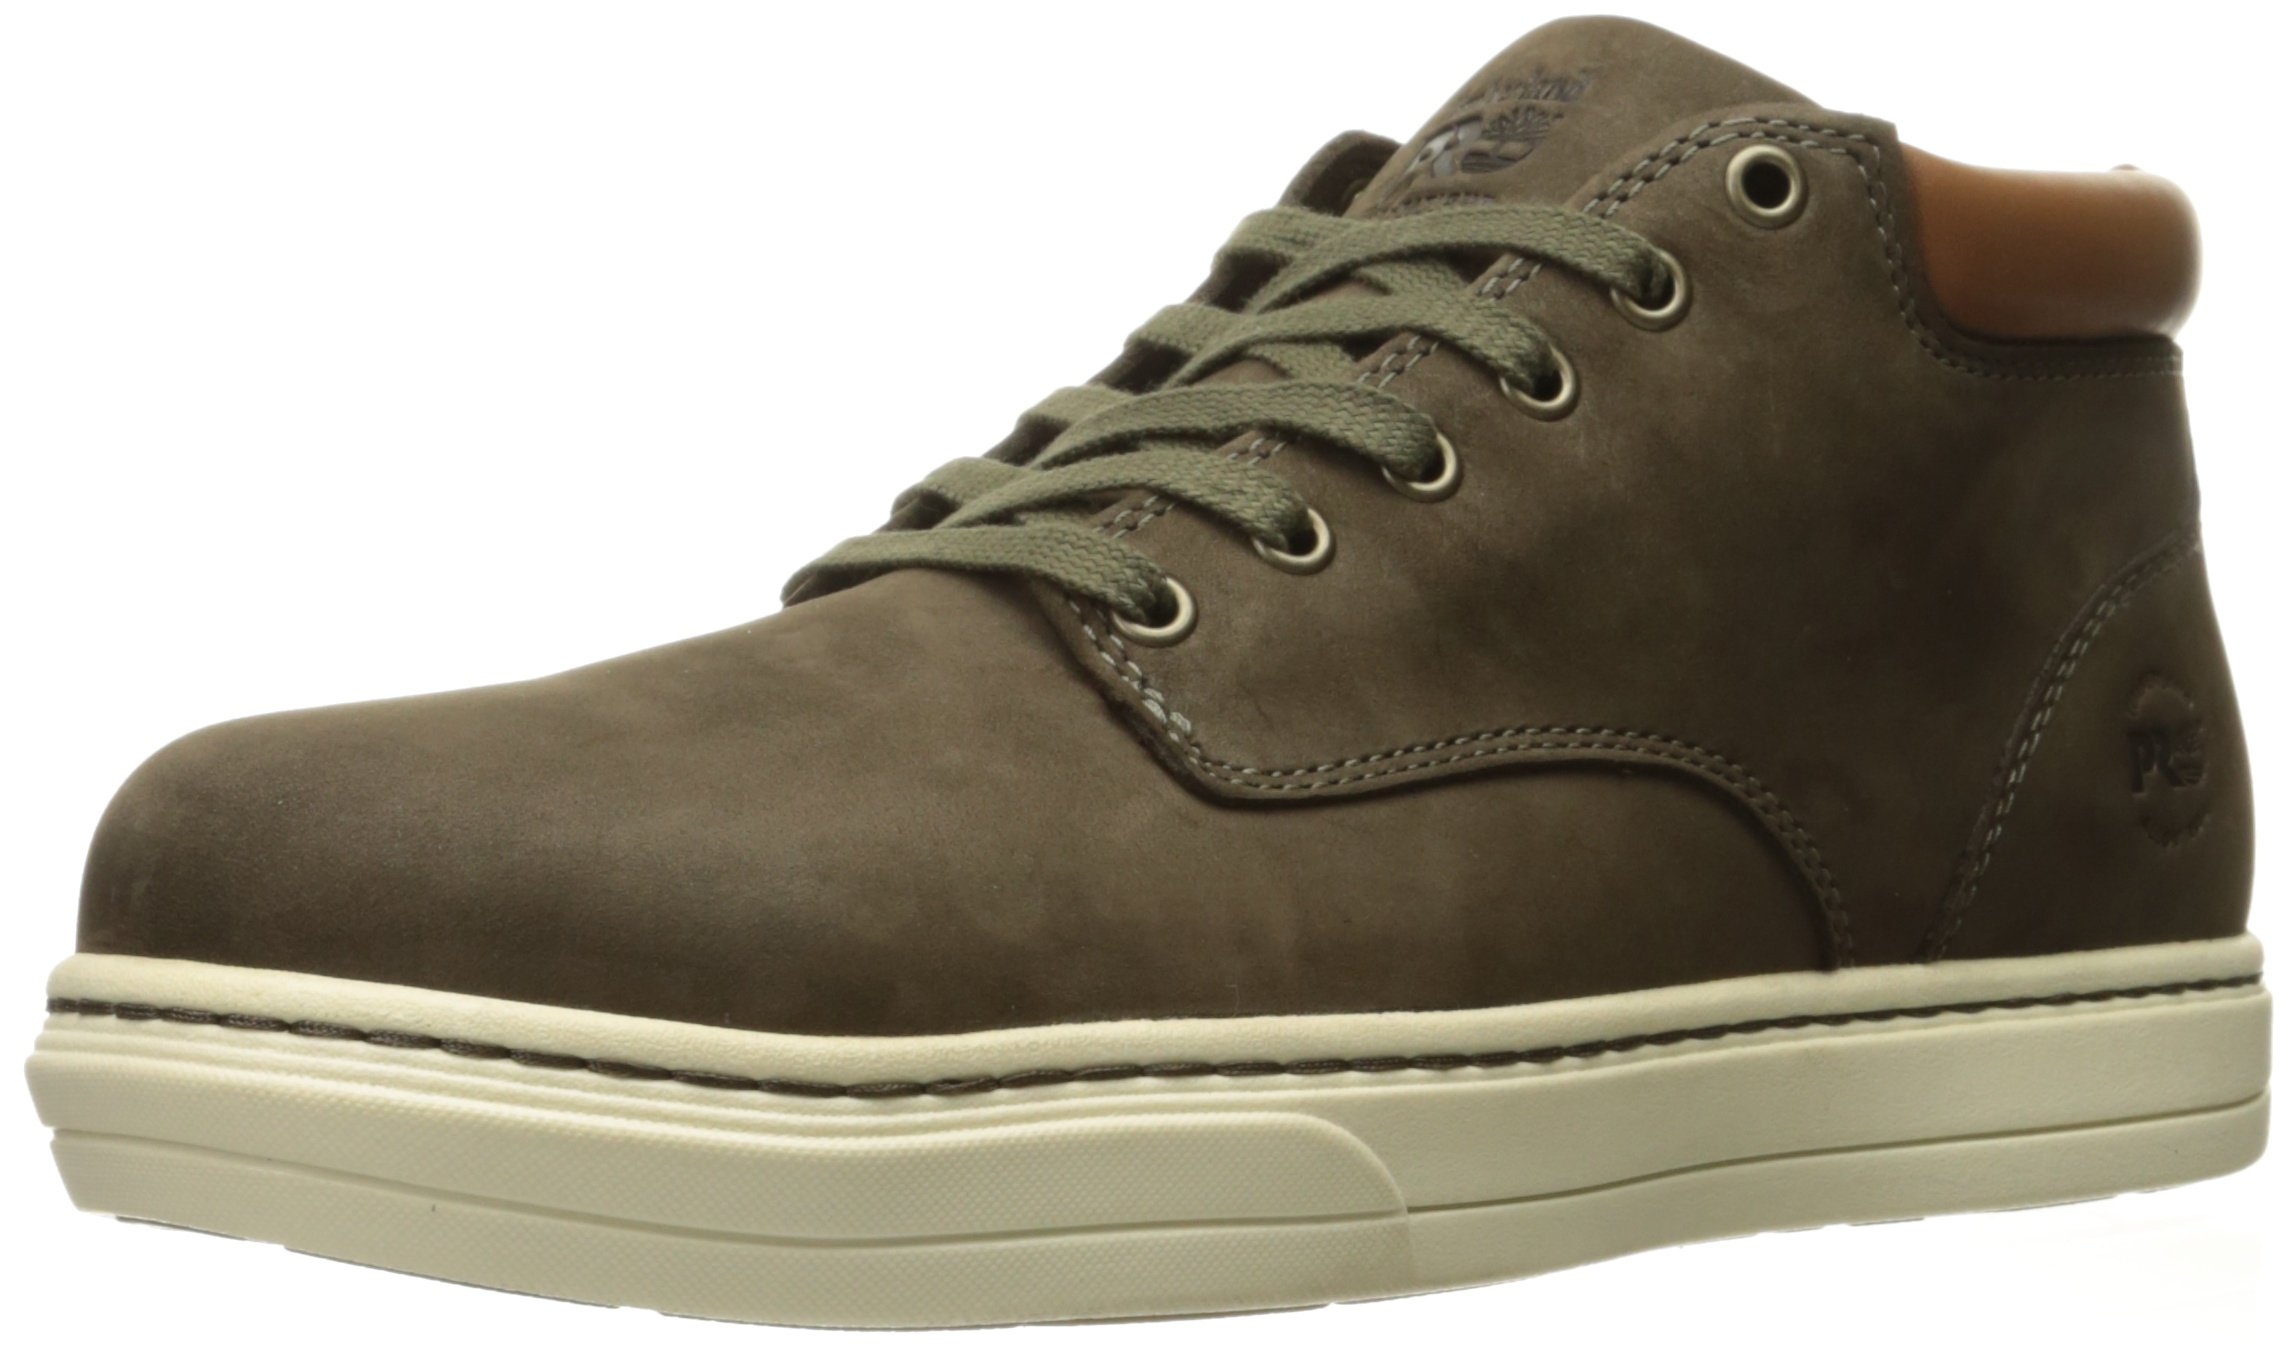 Timberland PRO Men's Disruptor Chukka Alloy Safety Toe EH Industrial & Construction Shoe, Donkey Nubuck, 10.5 W US